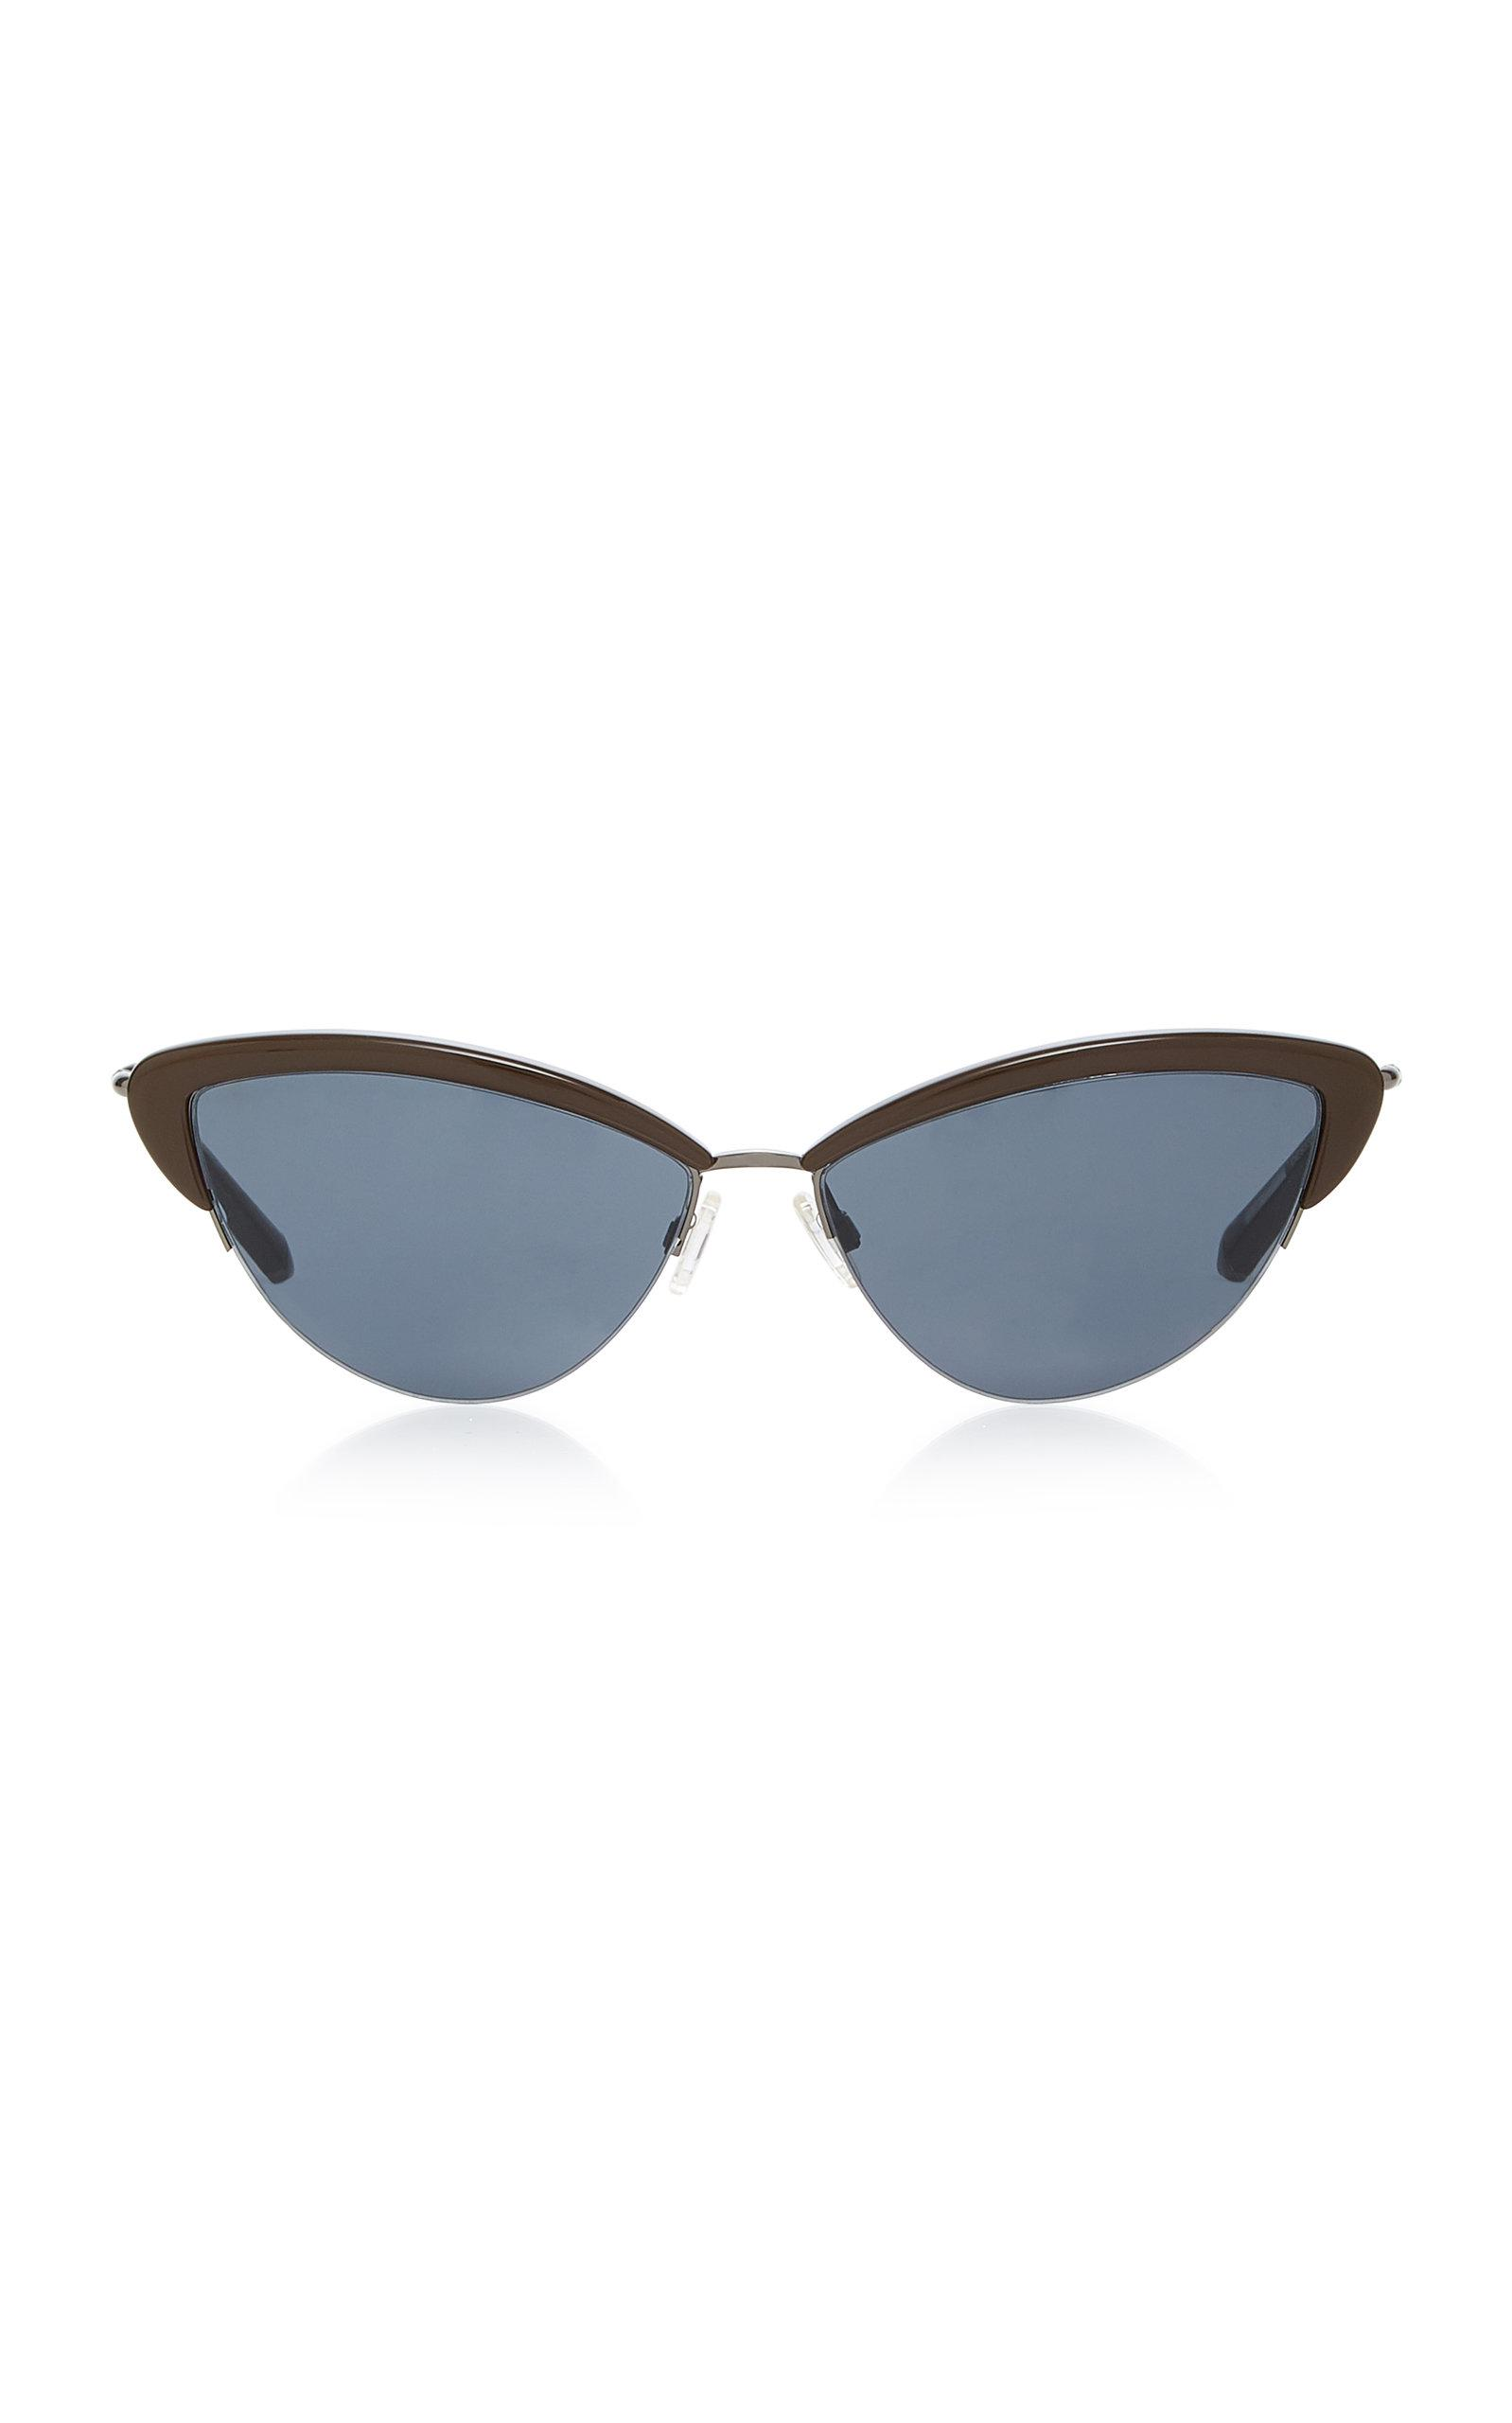 Ally Cat-Eye Acetate And Stainless-Steel Sunglasses Kate Young for Tura VHvrqffU